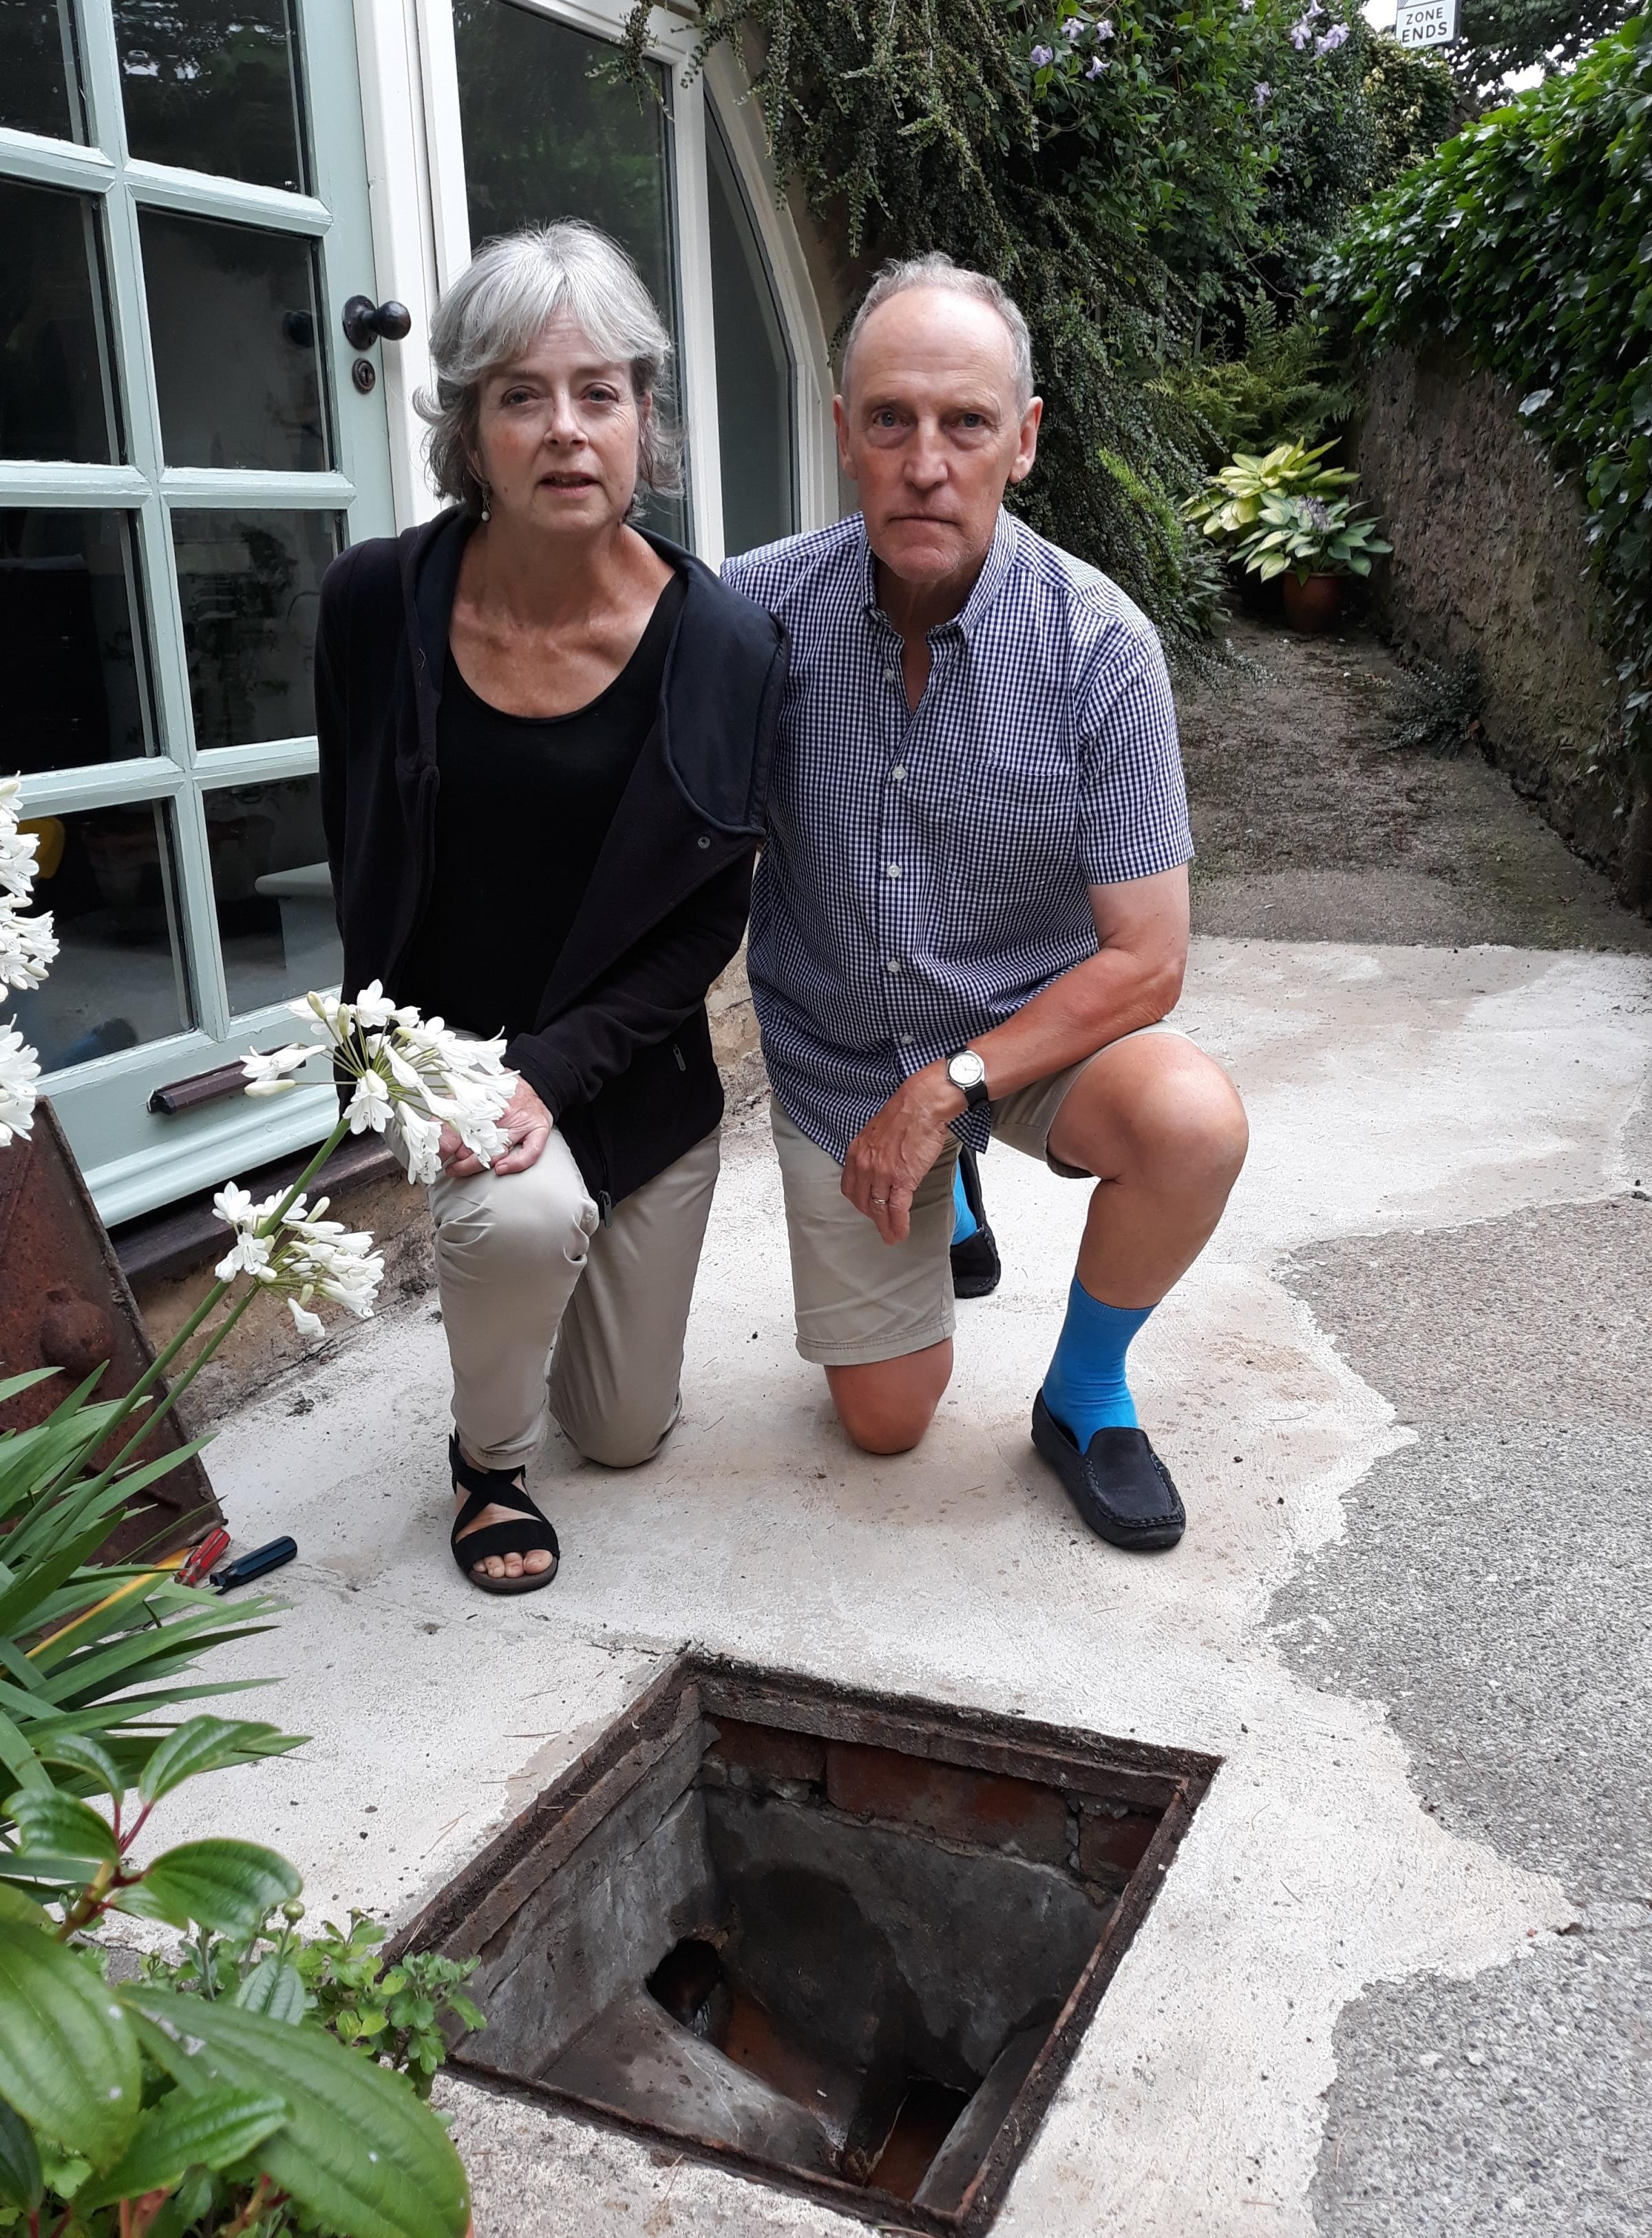 FRUSTRATION: Dave Dalton and Julie Martin next to the drain with water rushing through it